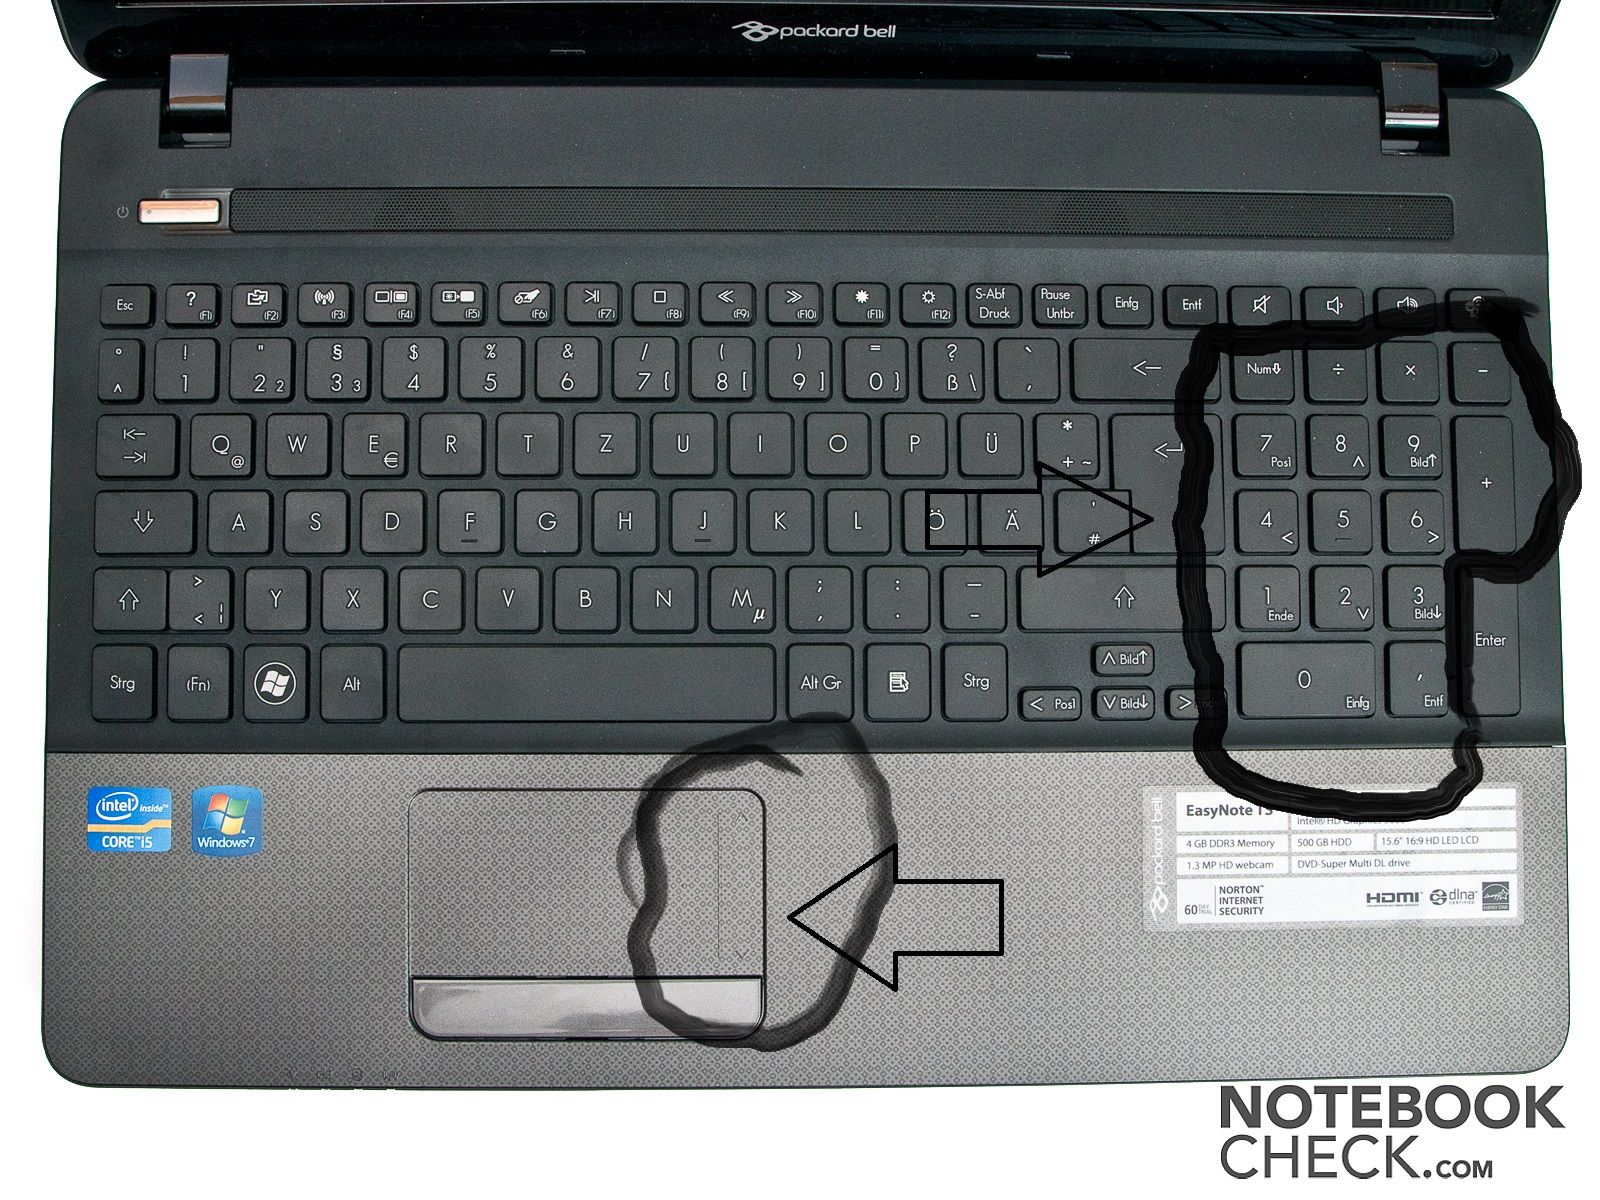 PACKARD BELL EASYNOTE LG81BA SYNAPTICS TOUCHPAD WINDOWS 7 X64 DRIVER